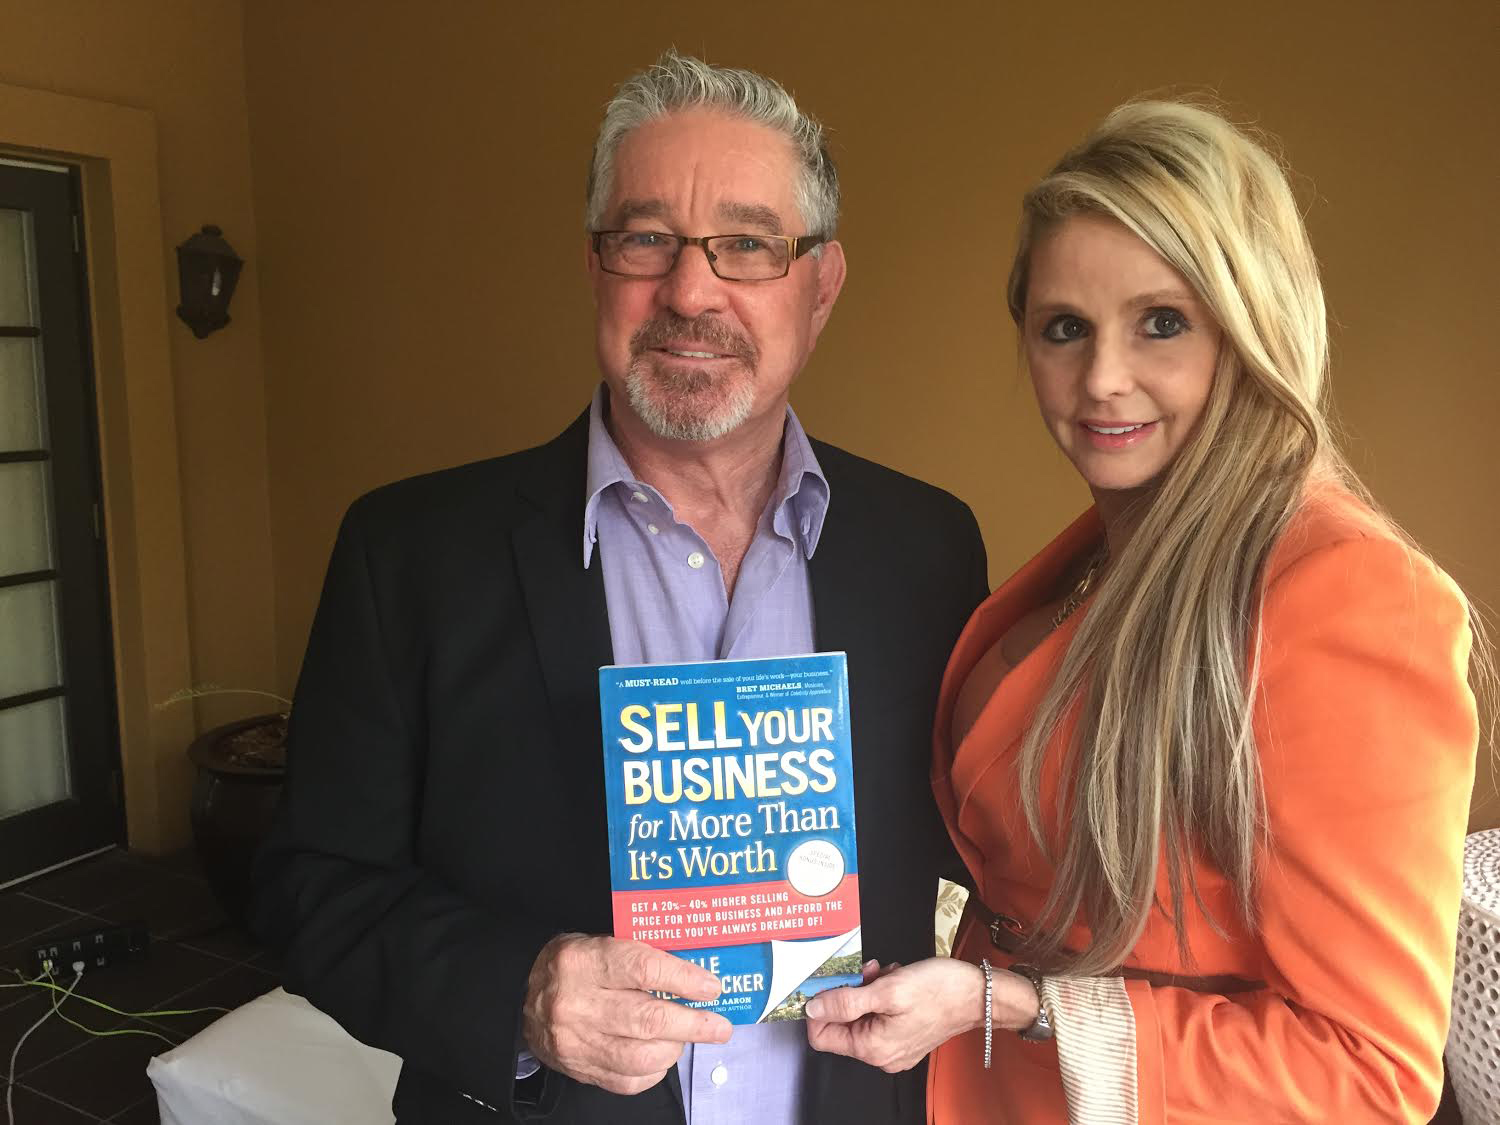 Michelle Seiler-Tucker with Berny Dohrmann, founder and CEO of CEO Space International, which gives prospective business leaders the tools and education they need to succeed in the future